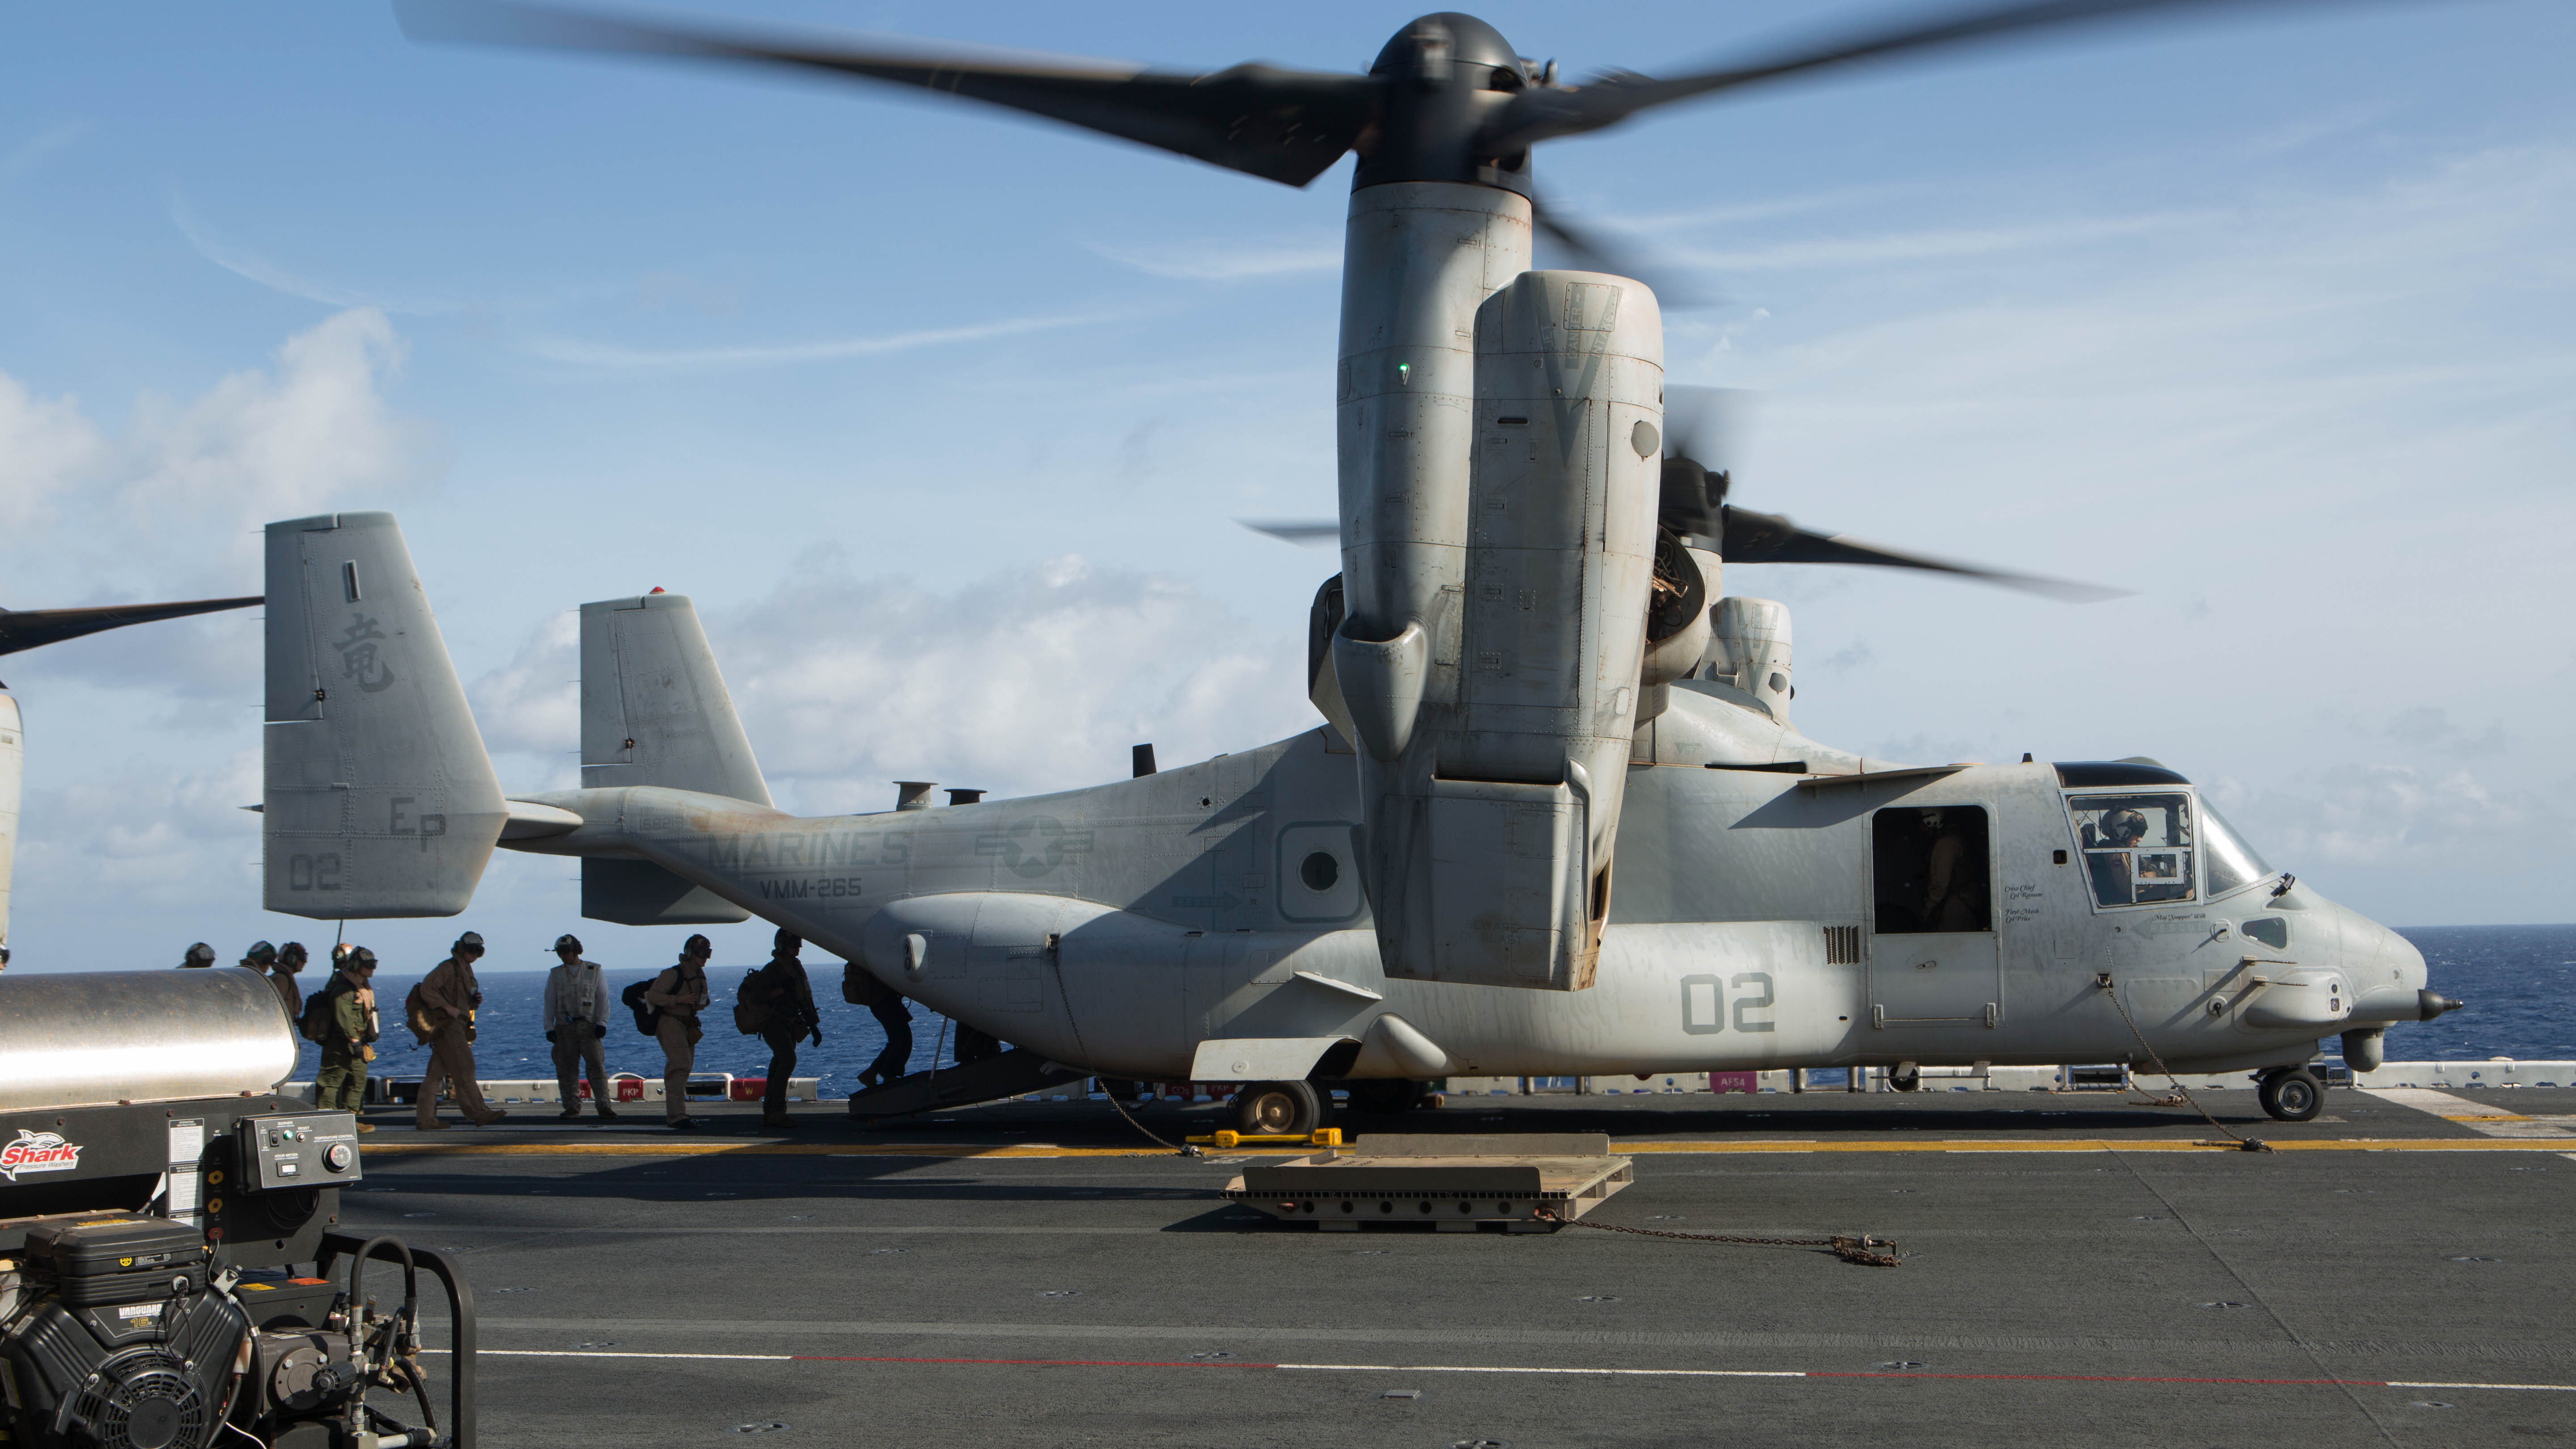 U.S. Marines and sailors with the 31st Marine Expeditionary Unit load into an MV-22B Osprey aboard the USS Bonhomme Richard (LHD 6), Aug. 8, 2015. The 31st MEU is staging Ospreys in Guam in support of typhoon recovery efforts in Saipan. The aircraft will be on standby in the event their aerial lift capacity is needed to distribute emergency supplies to remote areas. Saipan, the most populated island in the Commonwealth of the Northern Mariana Islands, was struck by Typhoon Soudelor Aug. 2-3. (U.S. Marine Corps photo by Cpl. Tyler Ngiraswei/ Released)